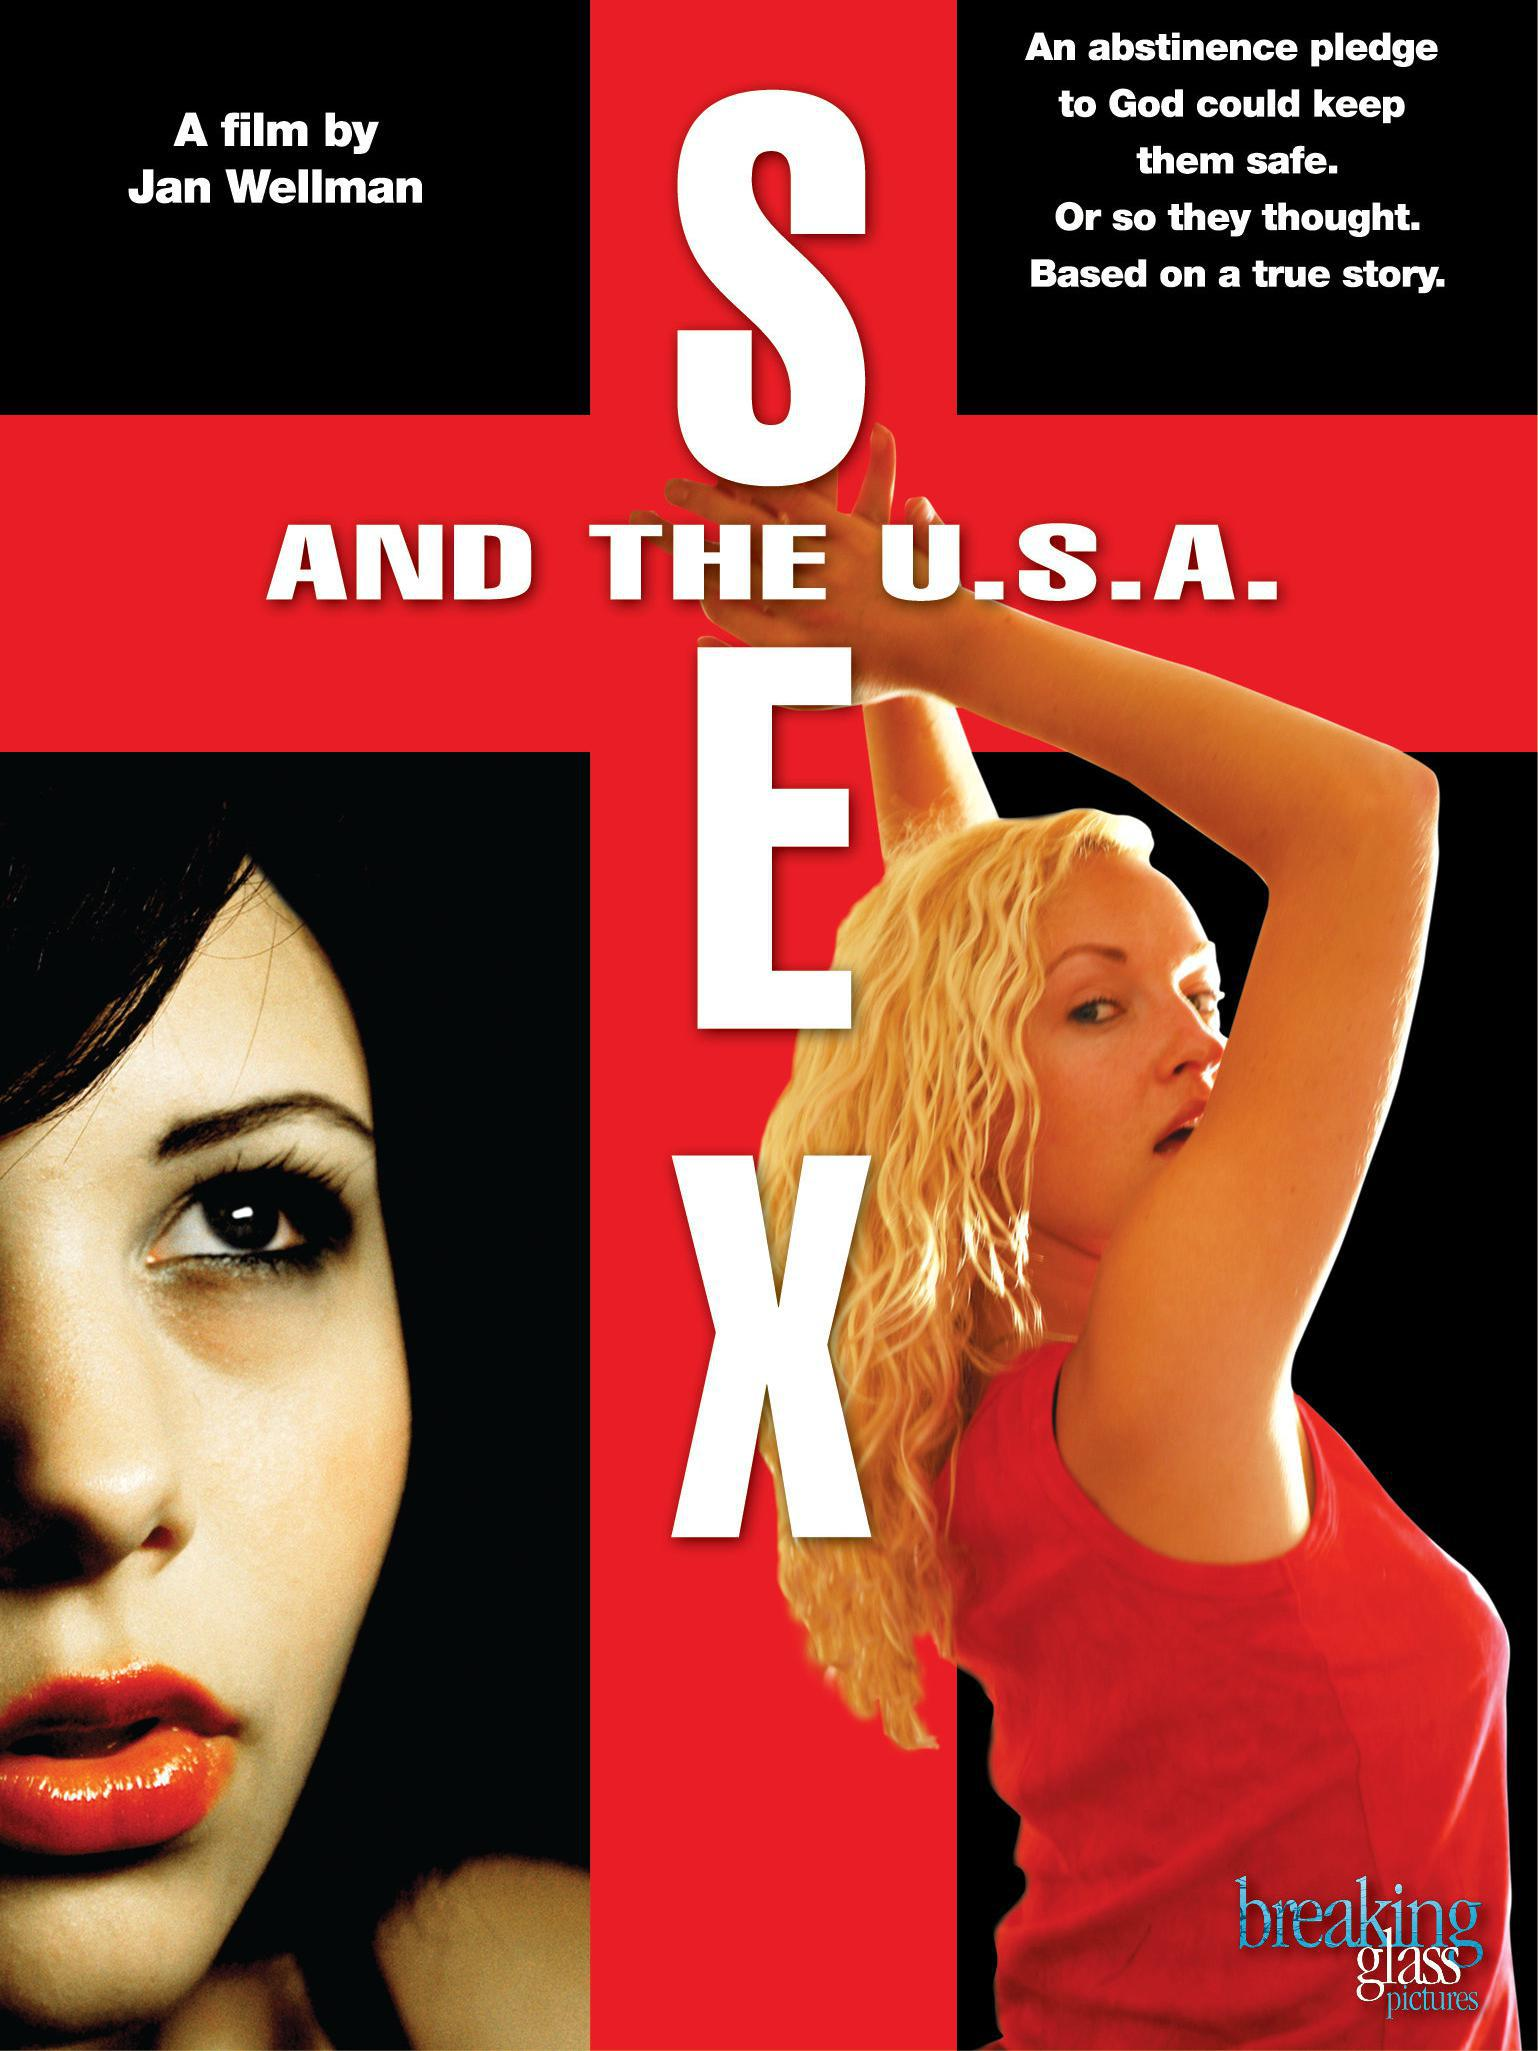 Sex and the U.S.A.